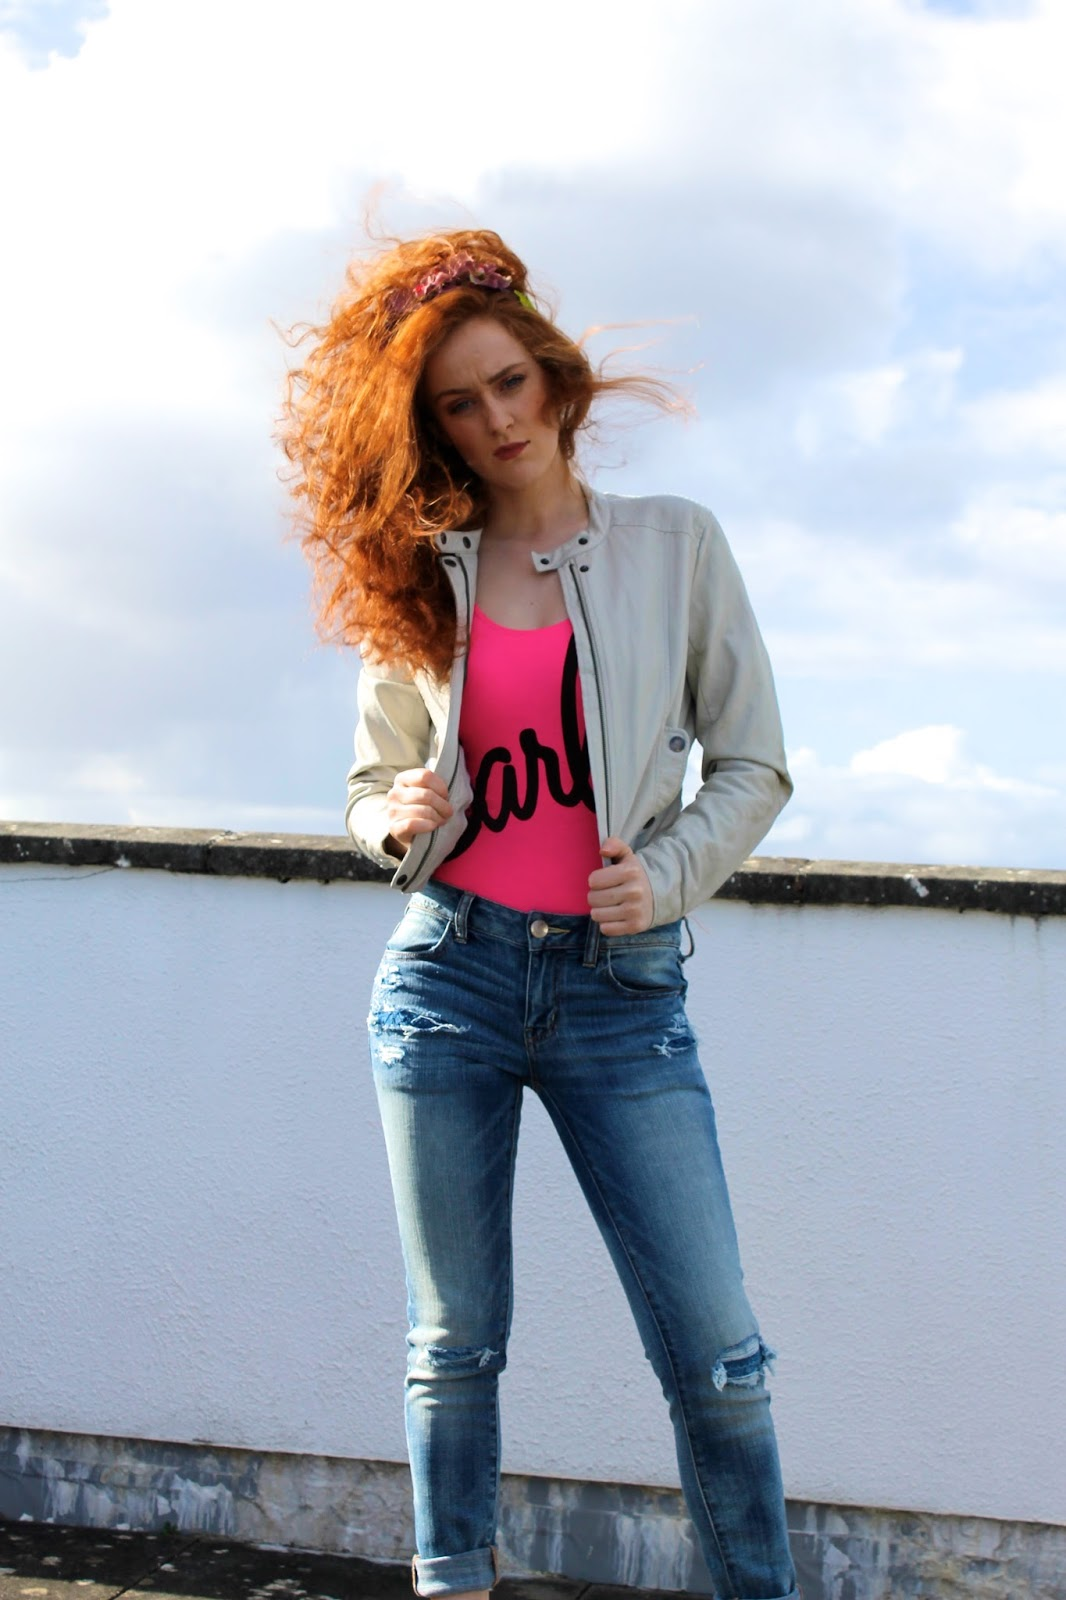 Stephanie Casserly taking part in #AEODenimDiaries